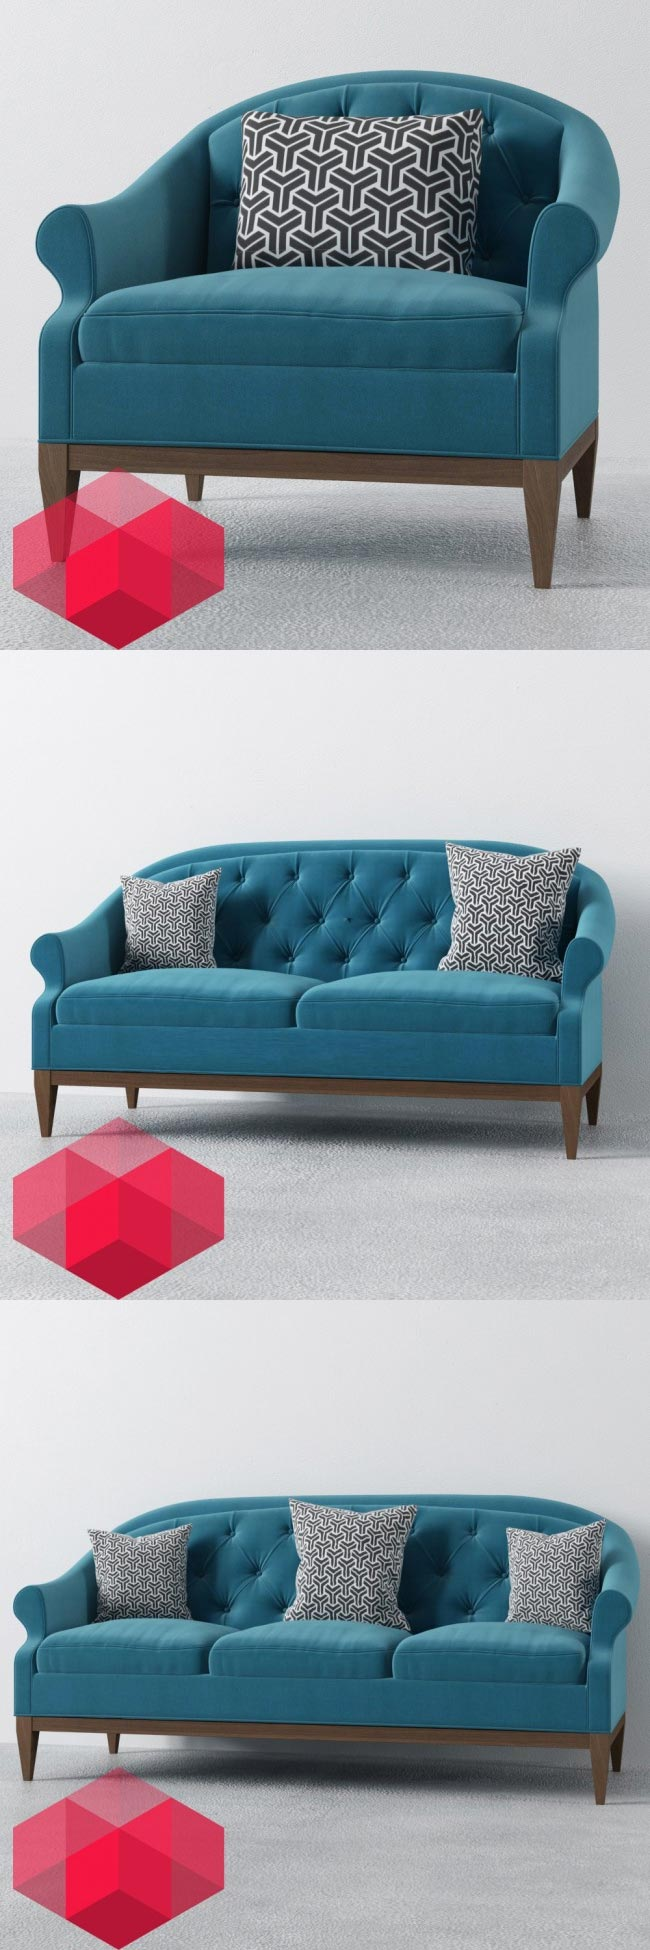 RedHome_visual_free_3d_models_sofas